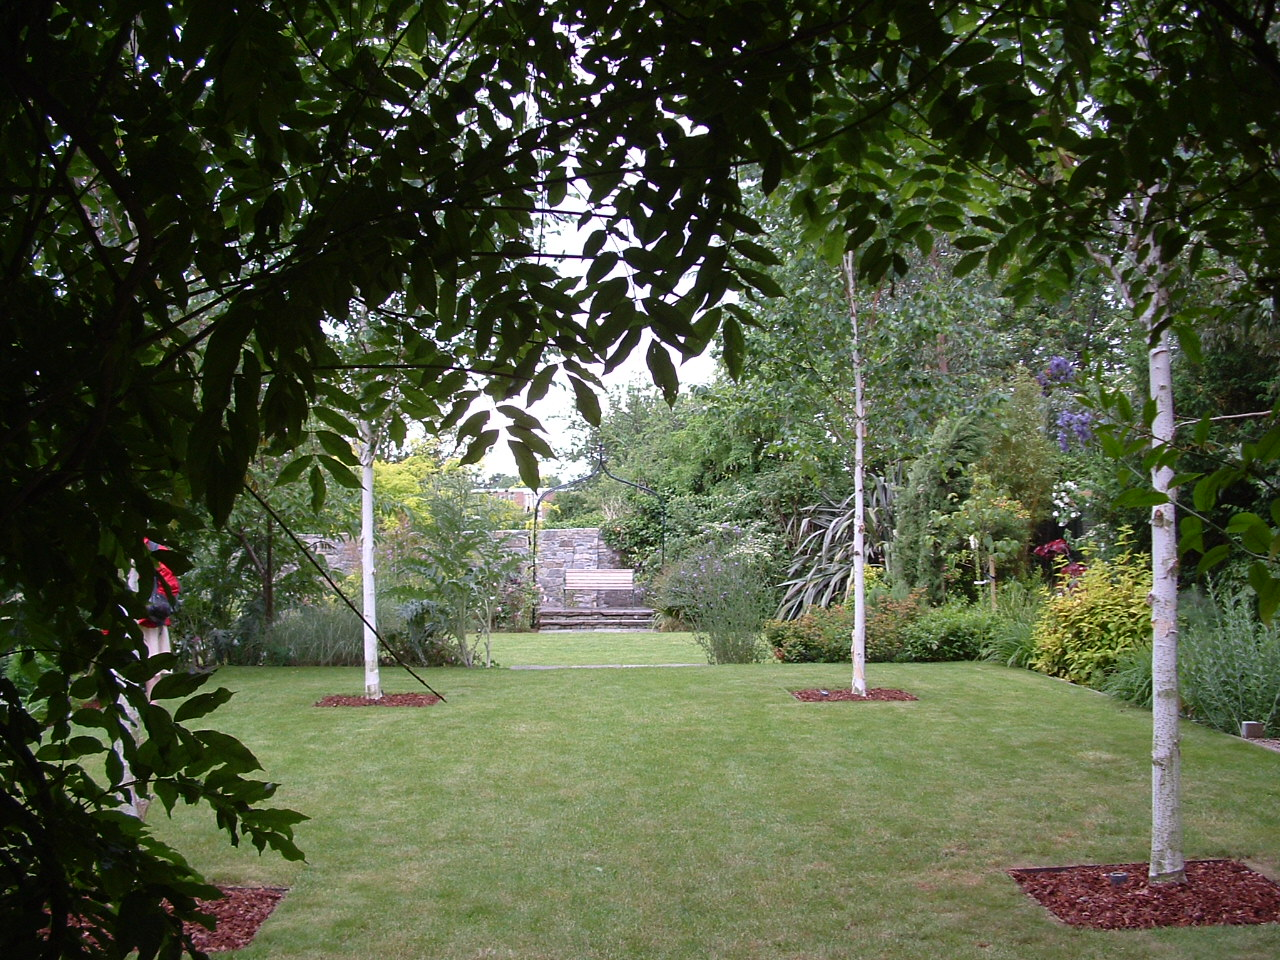 White birch trees, Betula 'Jaqumontii' frame the view over a formal lawn to a secluded arbour seat.